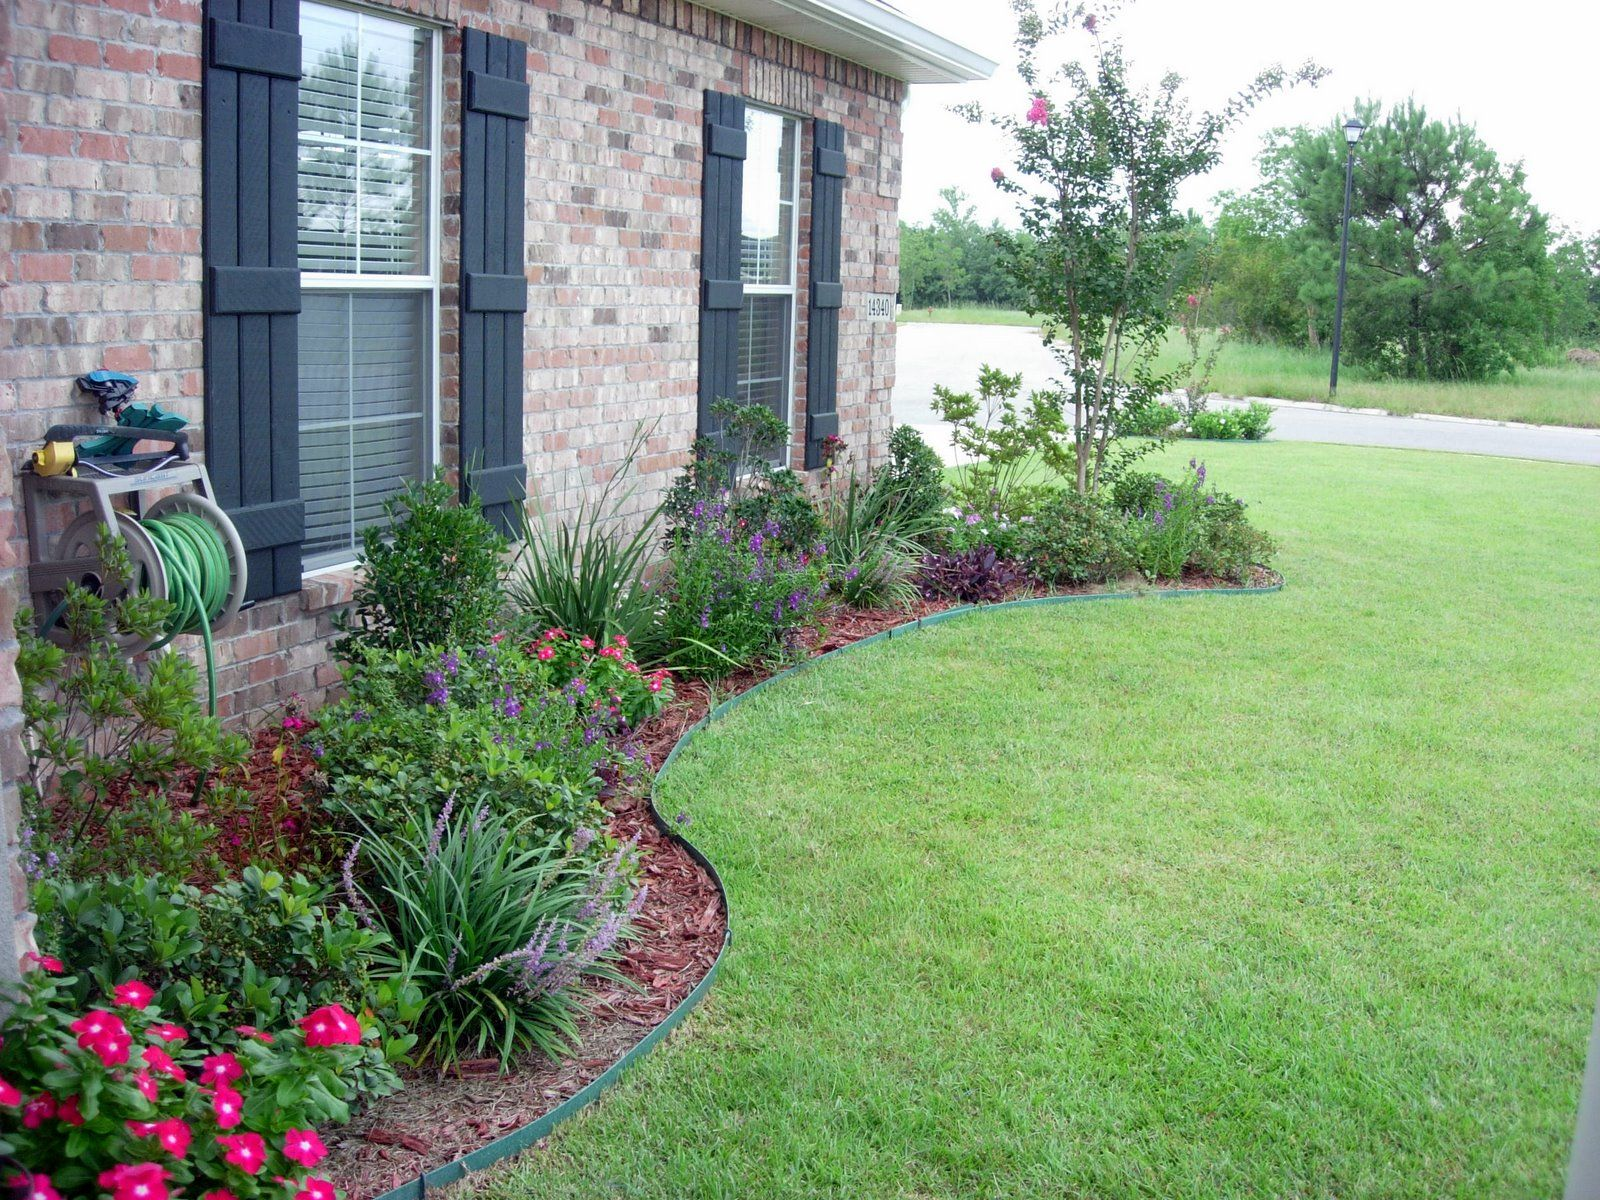 Best 20 Flower Bed Designs Ideas On Pinterest Plant Bed Front - design flower garden pictures